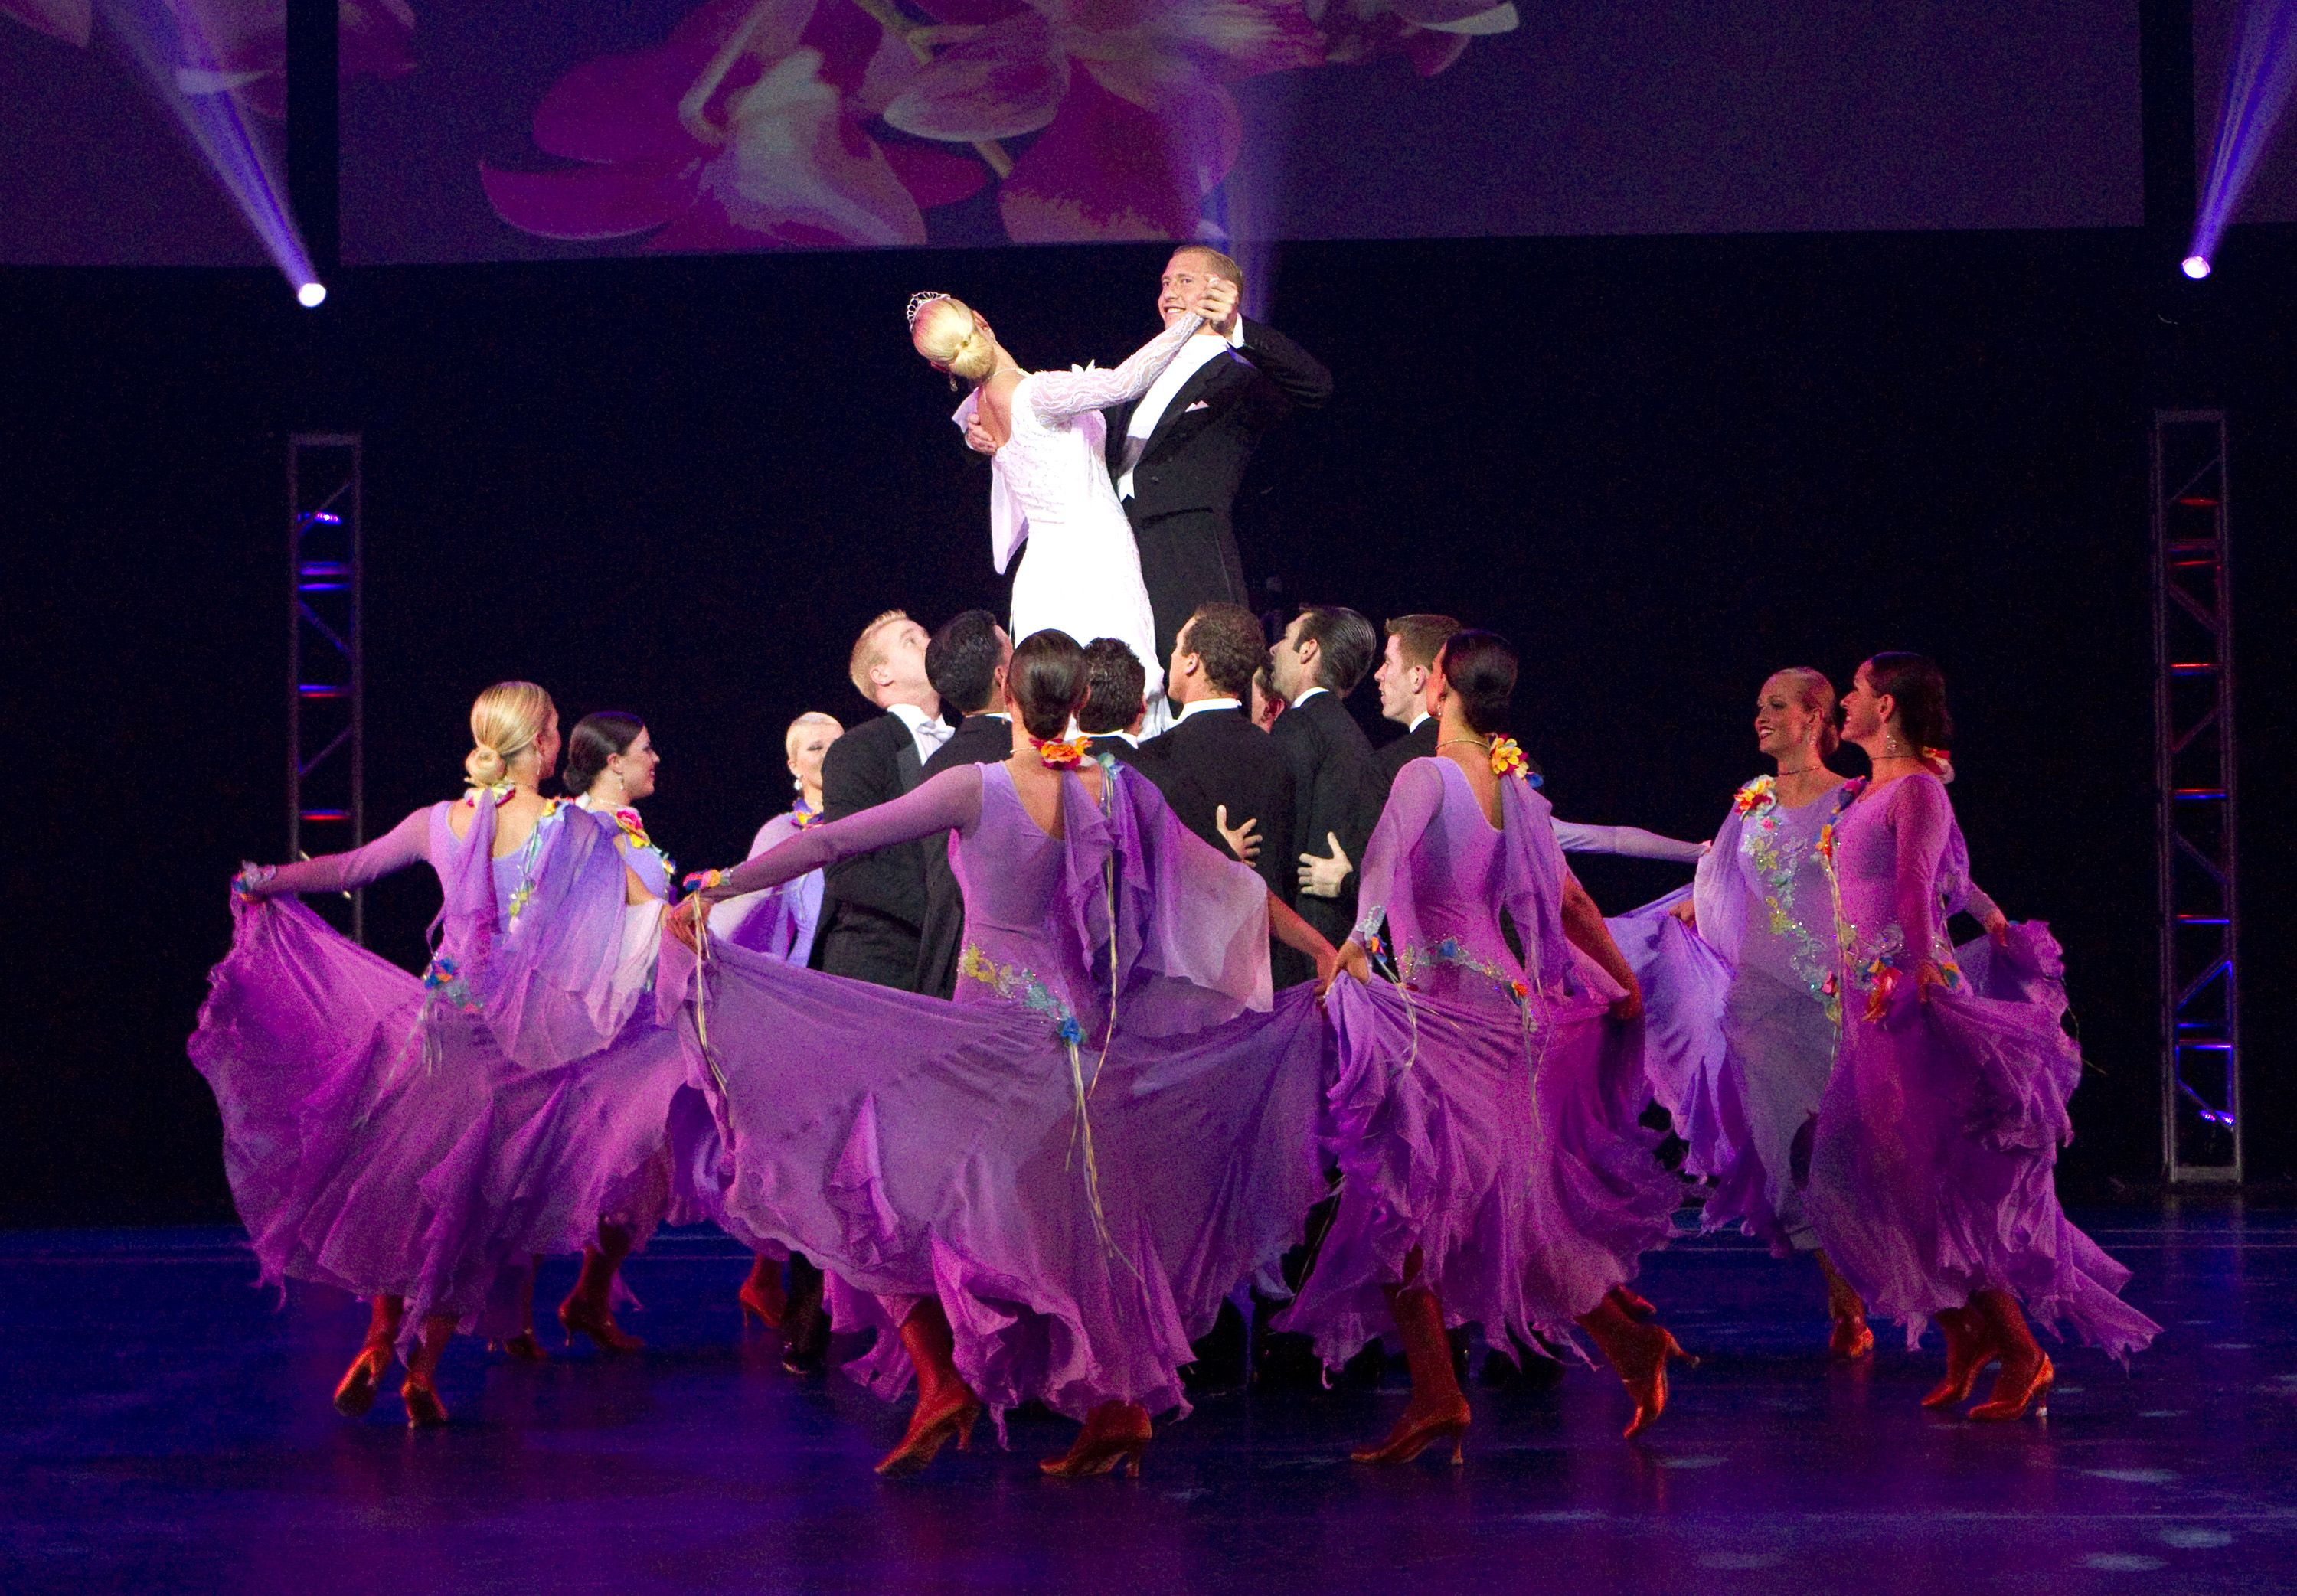 Byu Ballroom Dance Company Invites Audiences To Imagine April 8 9 Dance Company Ballroom Ballroom Dance